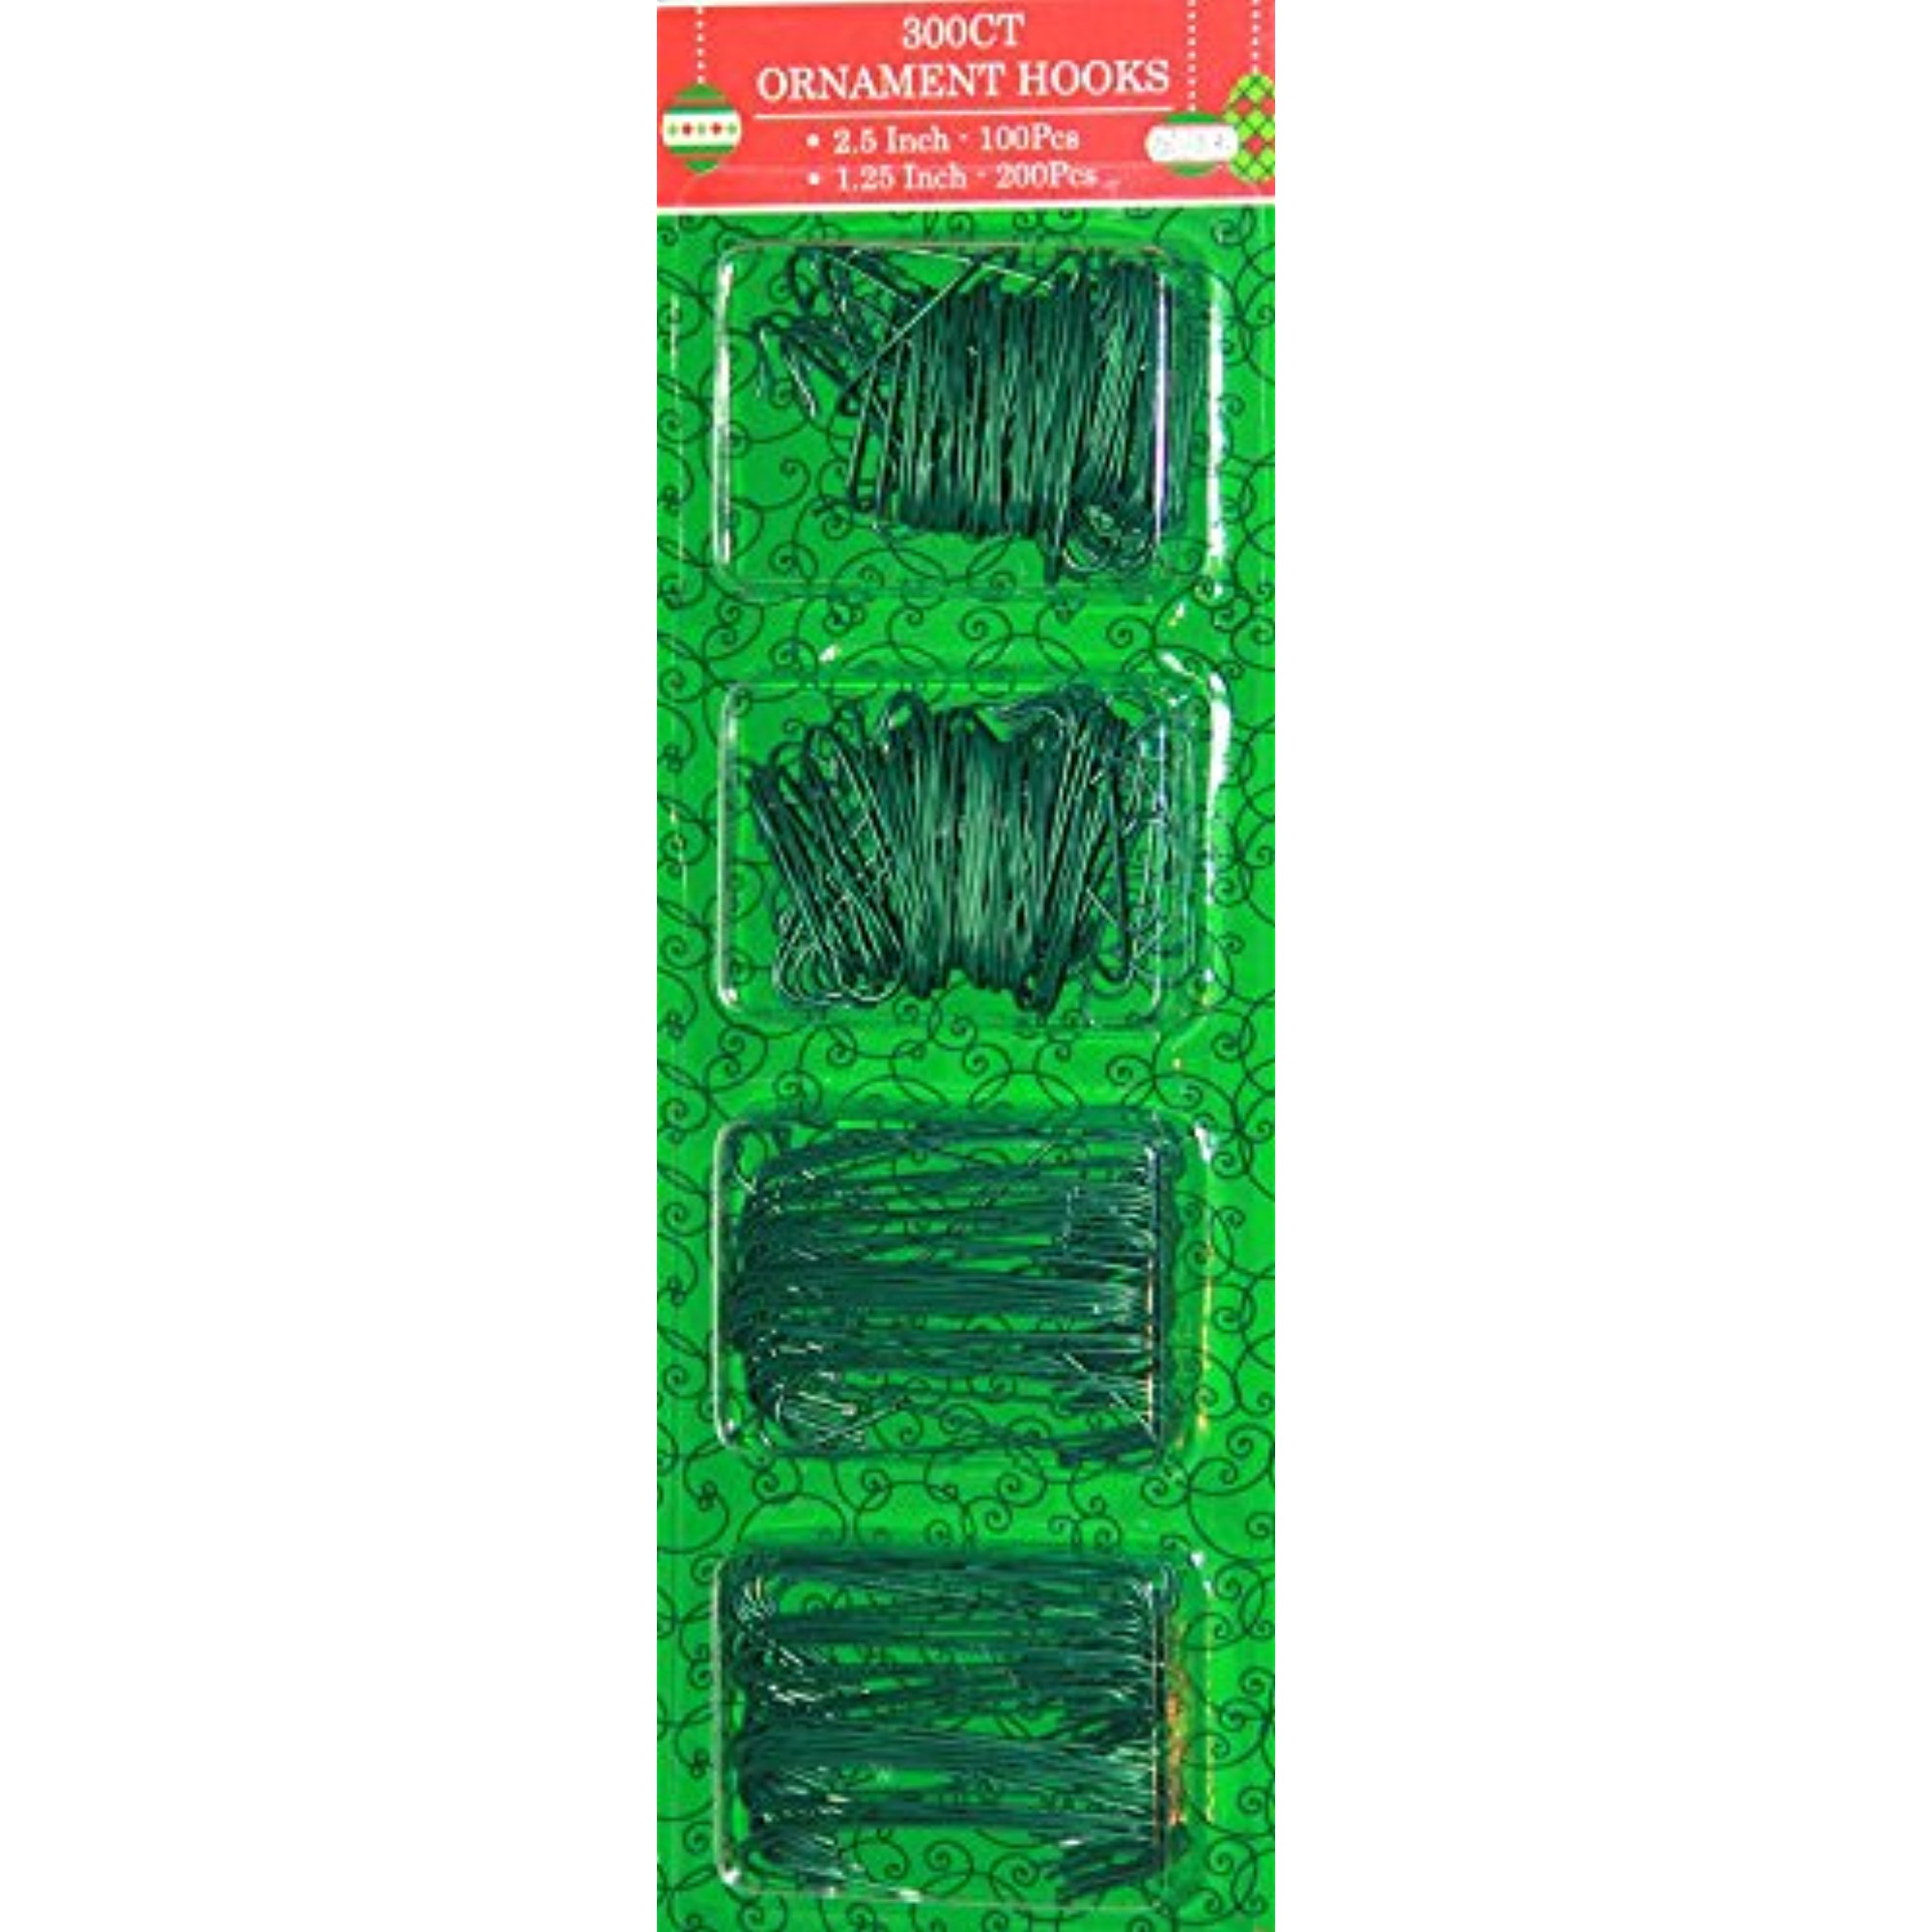 300 Green Ornament Hooks in 2 Sizes (300, Green)